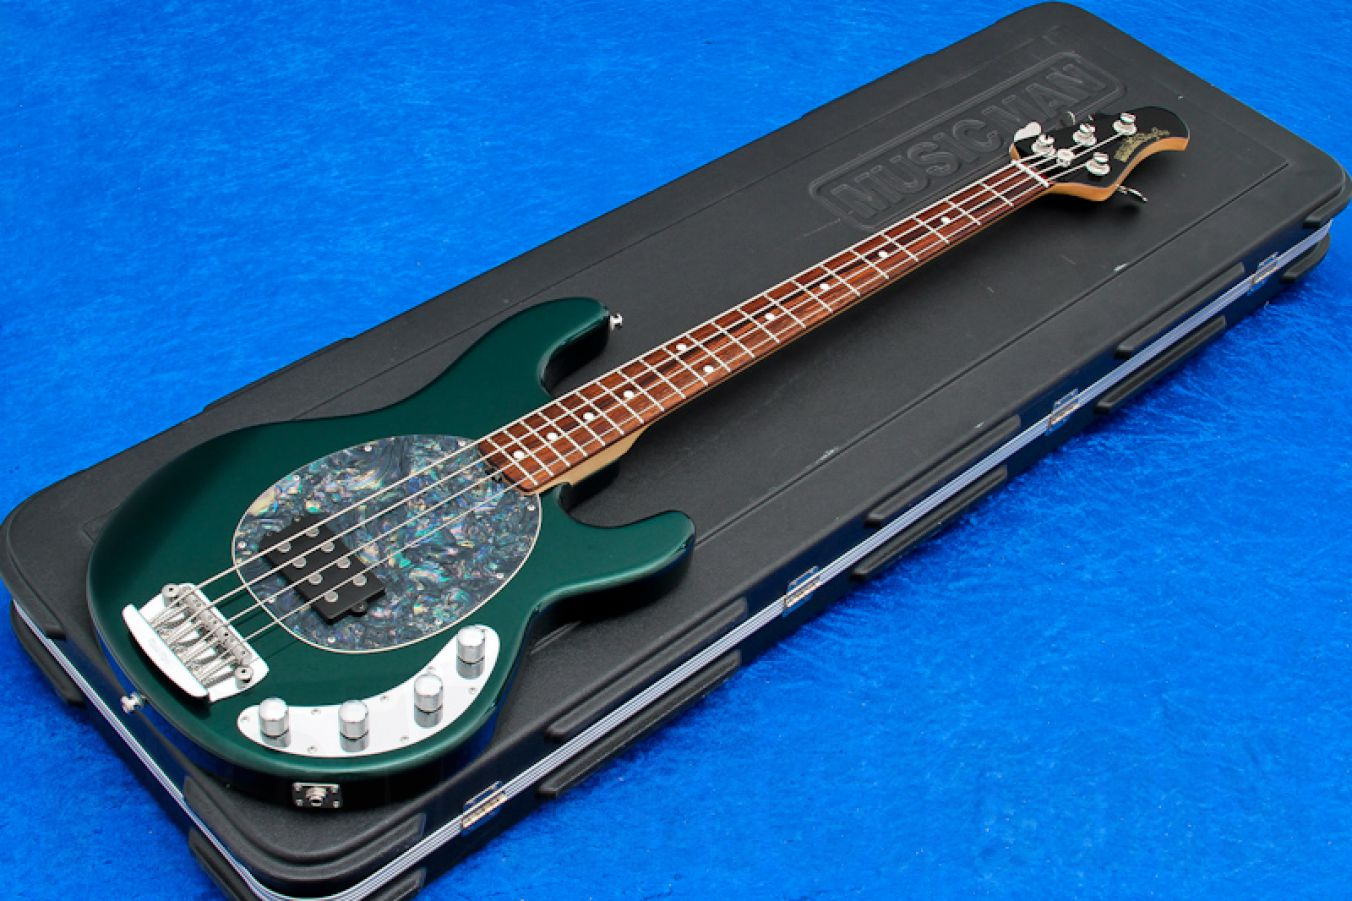 Music Man USA Stingray 4 LE - Envy Green Limited Edition